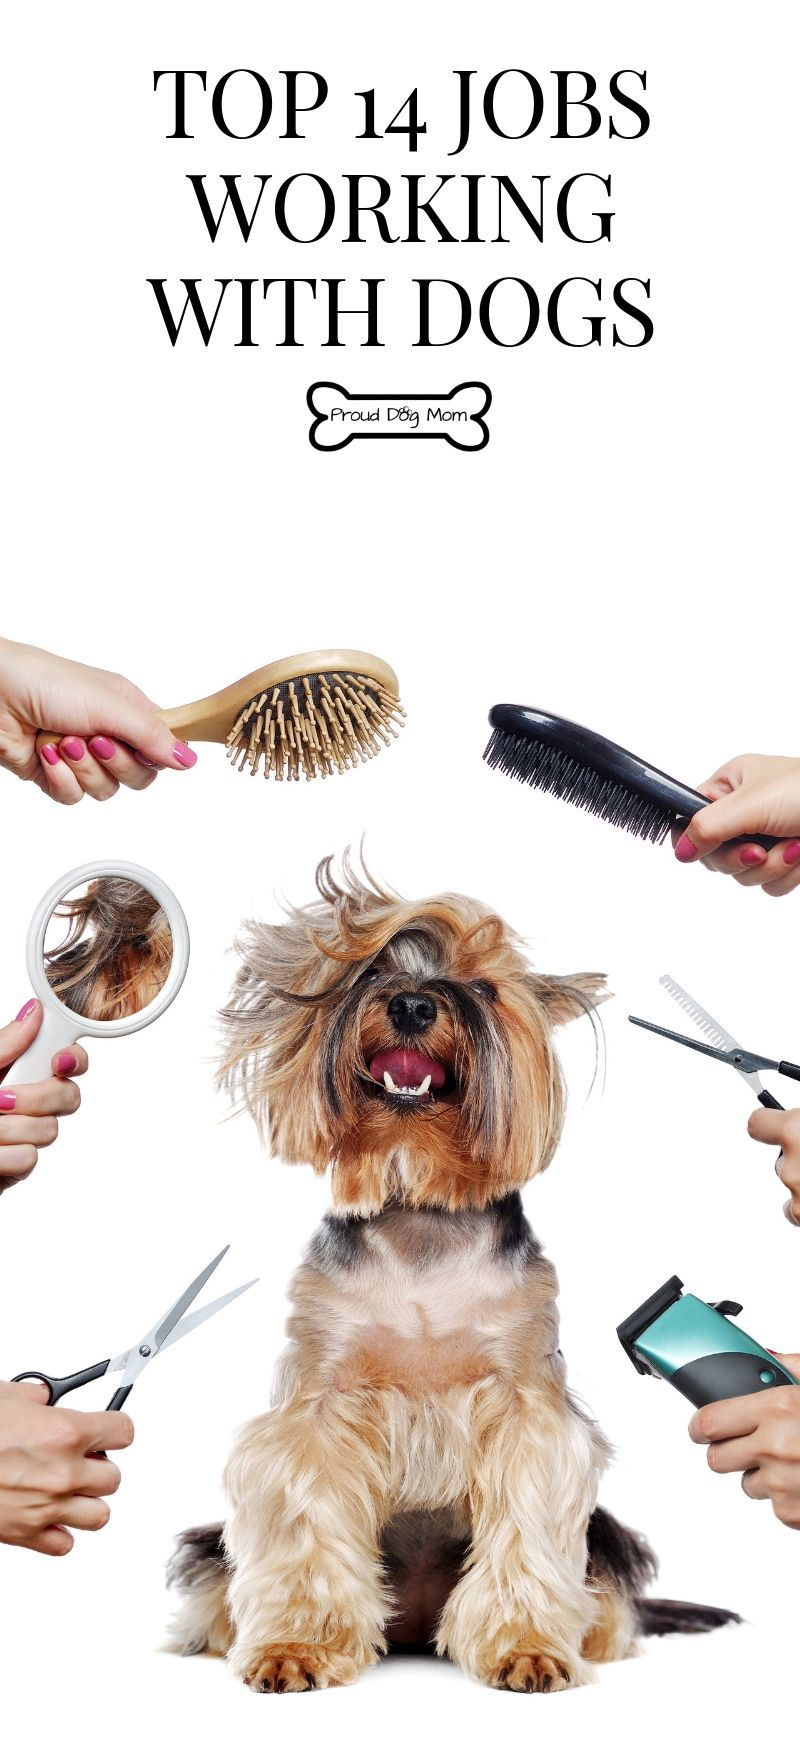 Top 14 Jobs Working With Dogs Proud Dog Mom Jobs Working With Dogs Dog Grooming Jobs With Animals